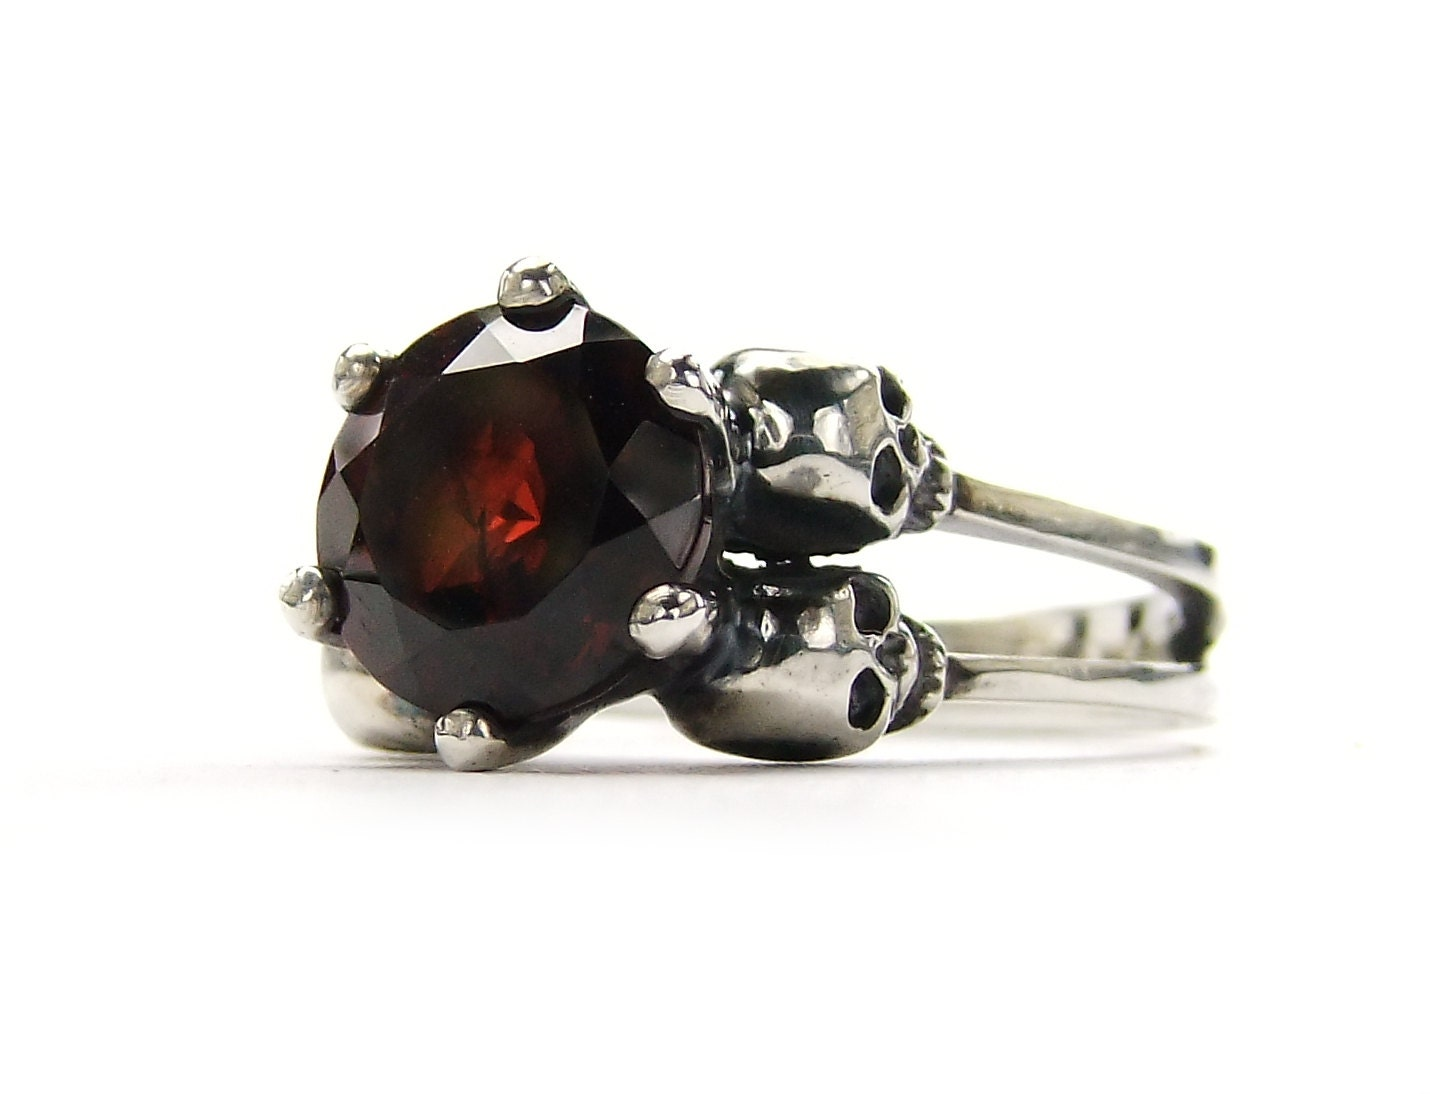 double skull wedding ring with red garnet in sterling silver all sizes - Garnet Wedding Ring